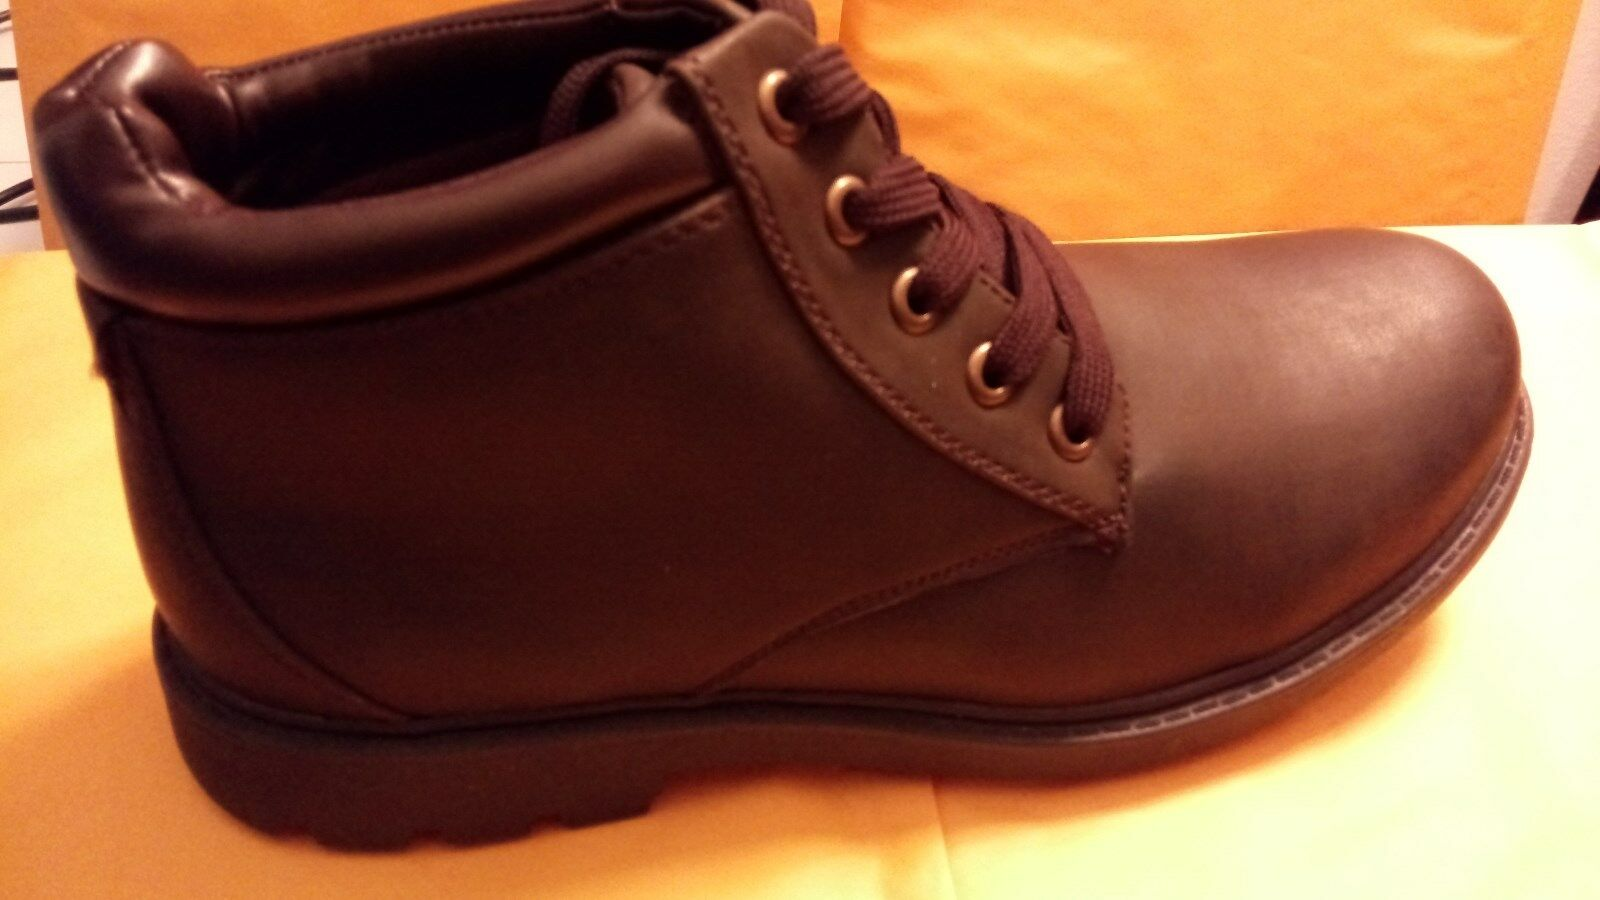 David Stone Vince Size 7 M Men's Brown Boot Style